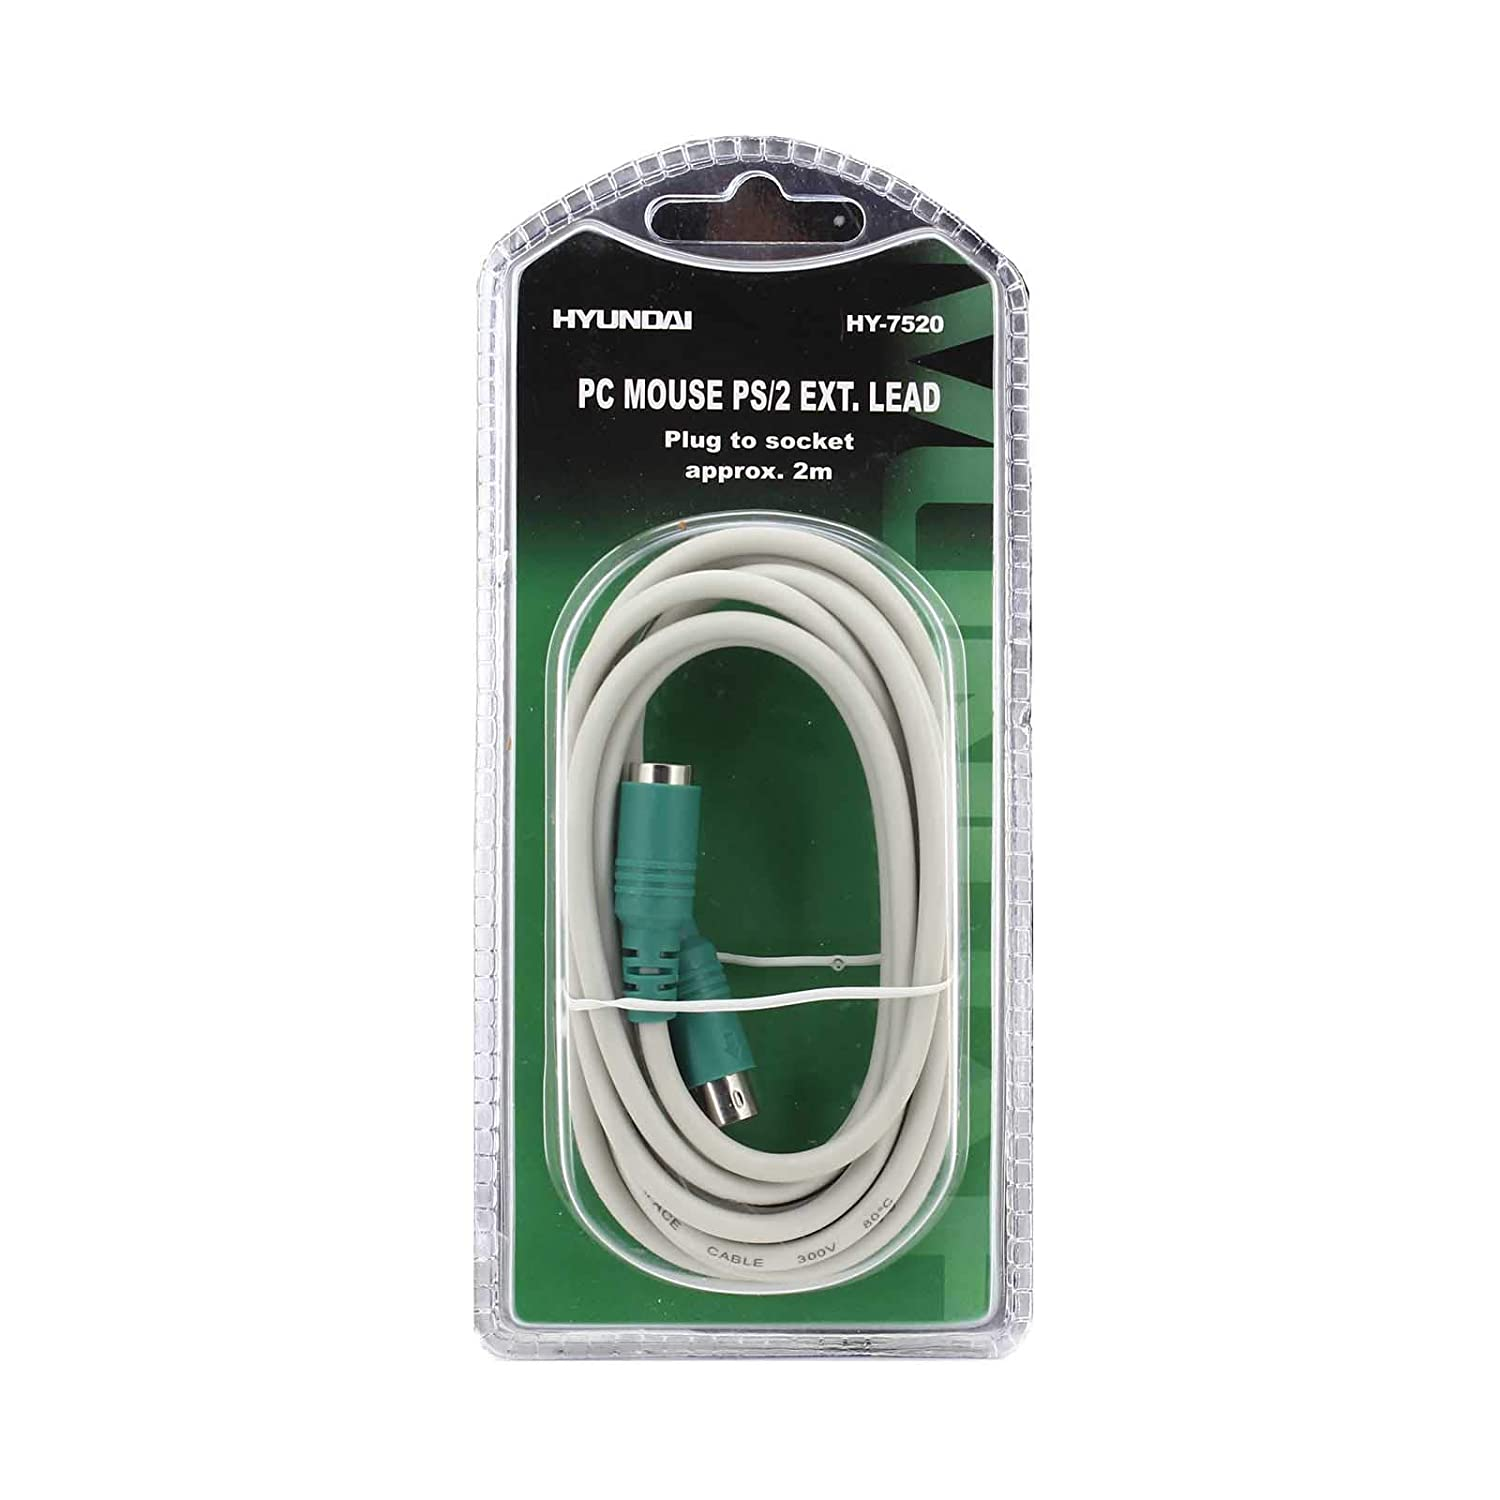 MOUSE 2M, Green 6 pin Plug to Female Socket 121AV PS2 PS//2 Extension Cable Extender Lead for Keyboard or Mouse